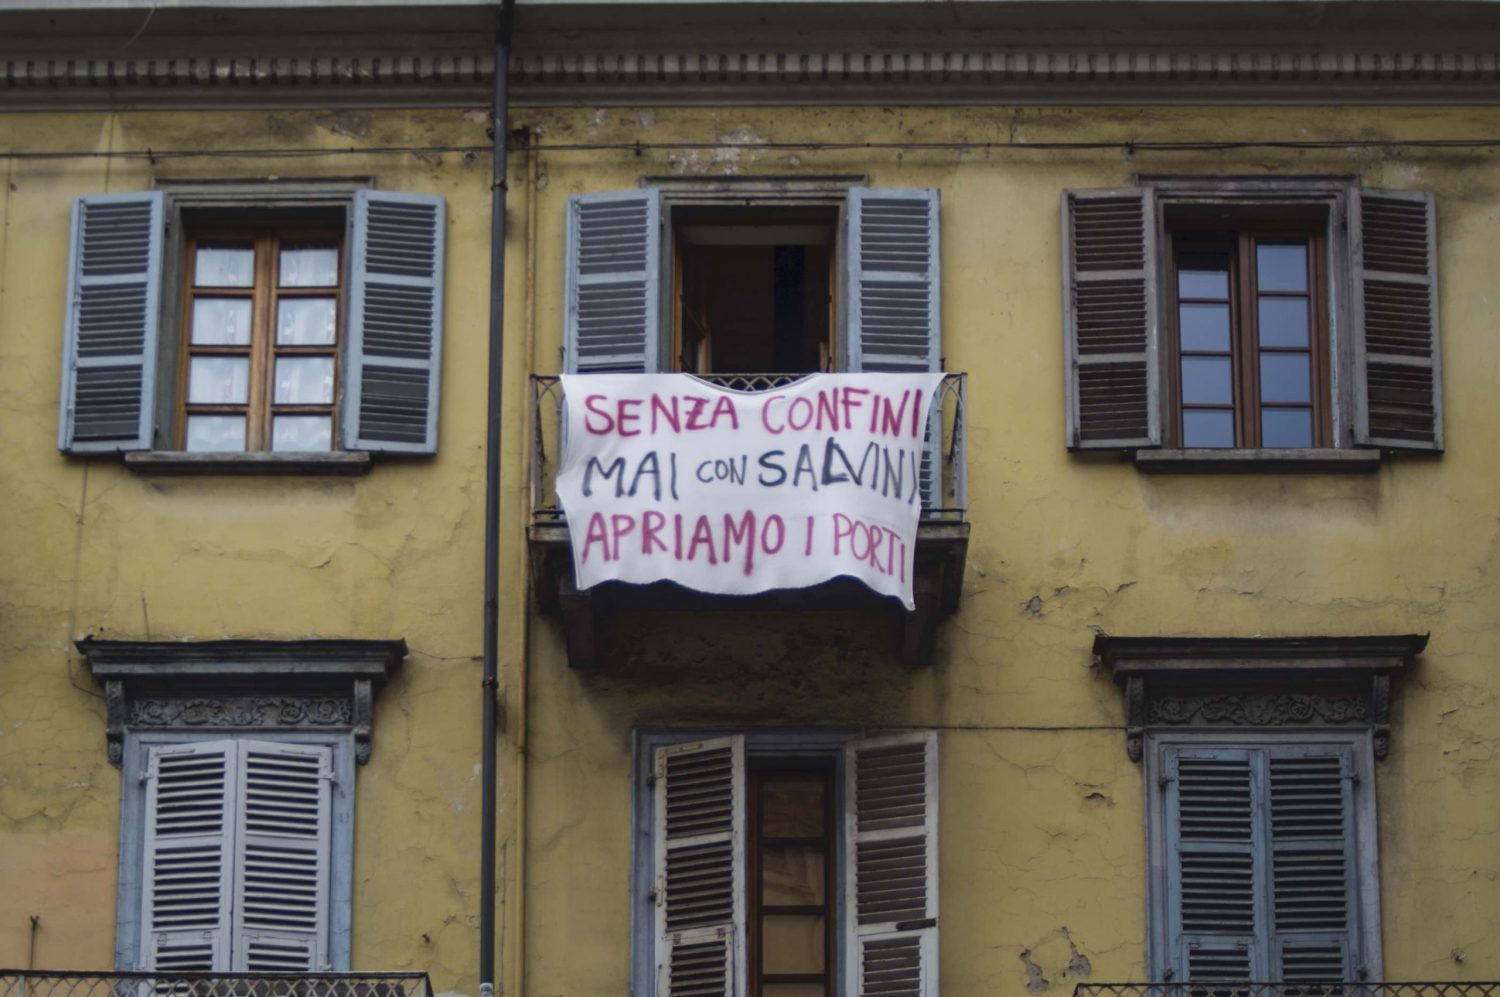 Salvini means border in Italian. Turin, August 2019.